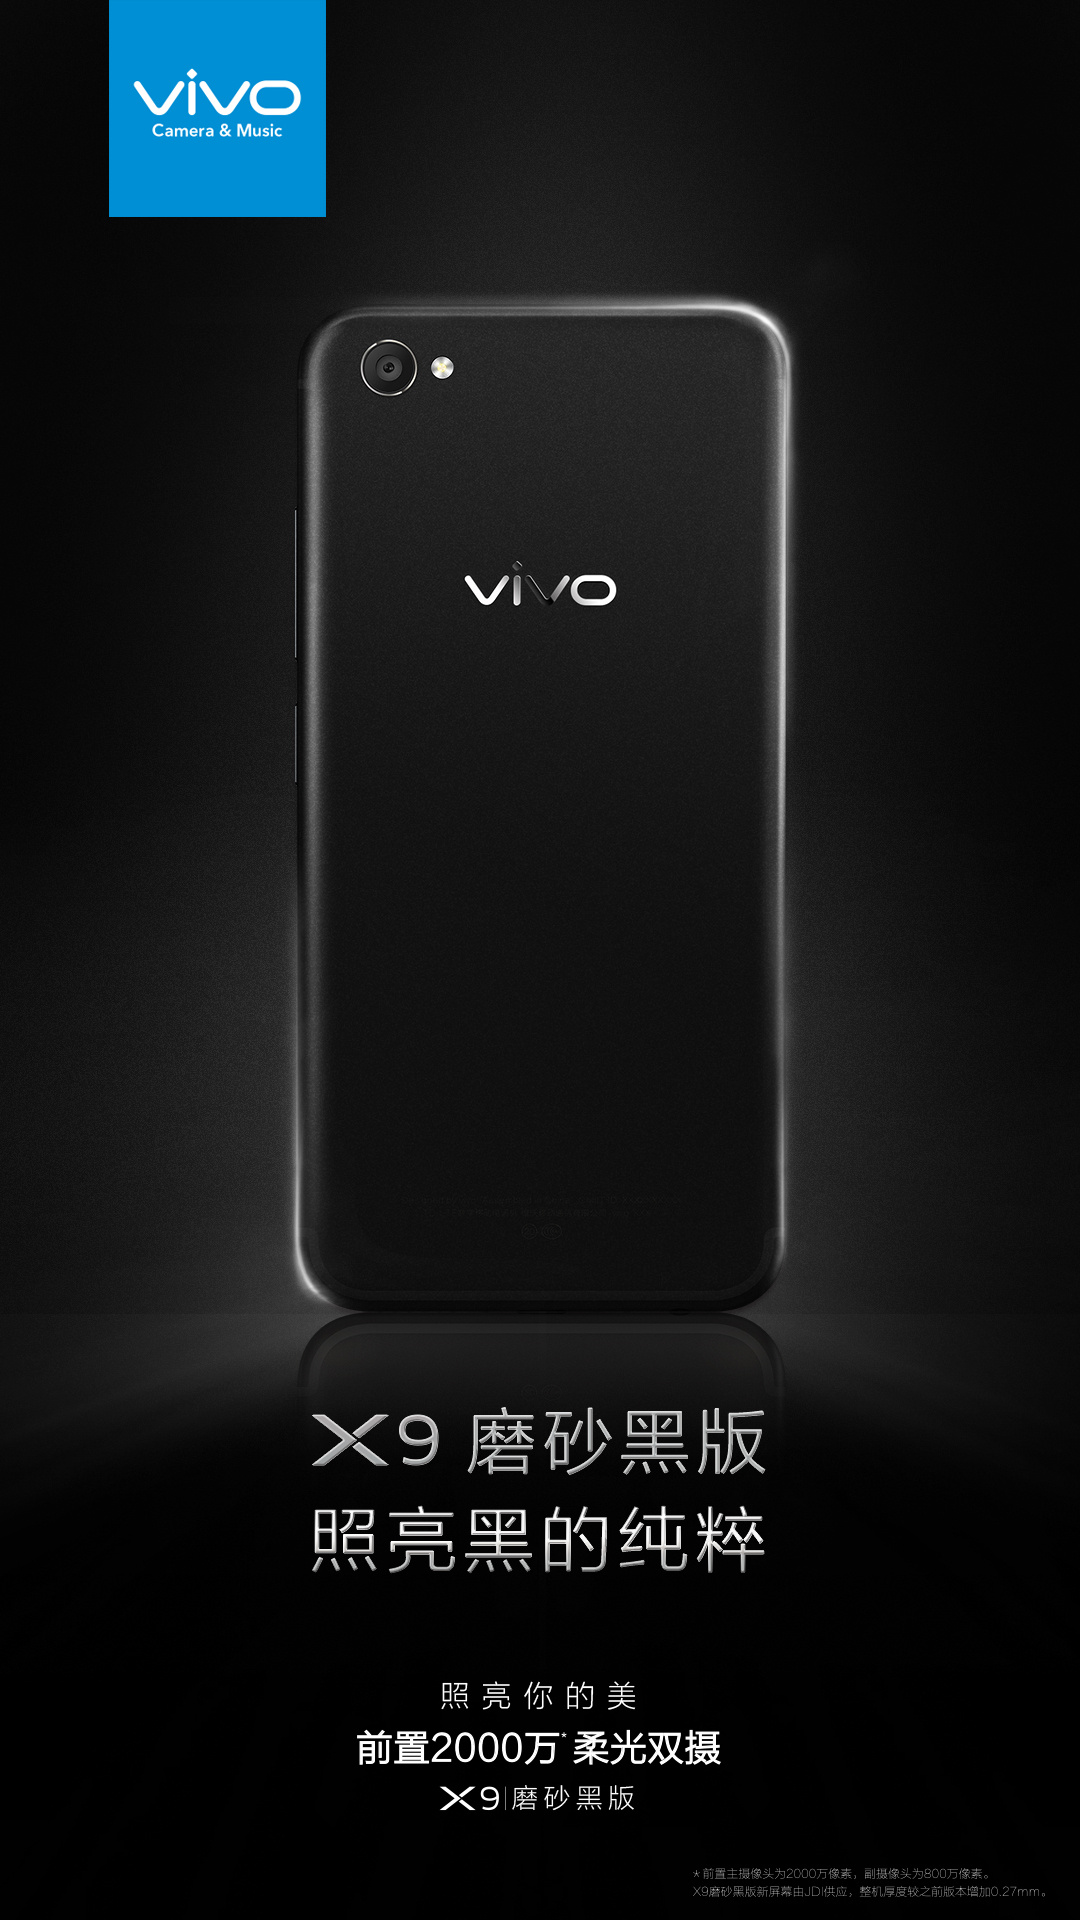 Vivo X9 Matte Black Color Launches In China The Android Soul